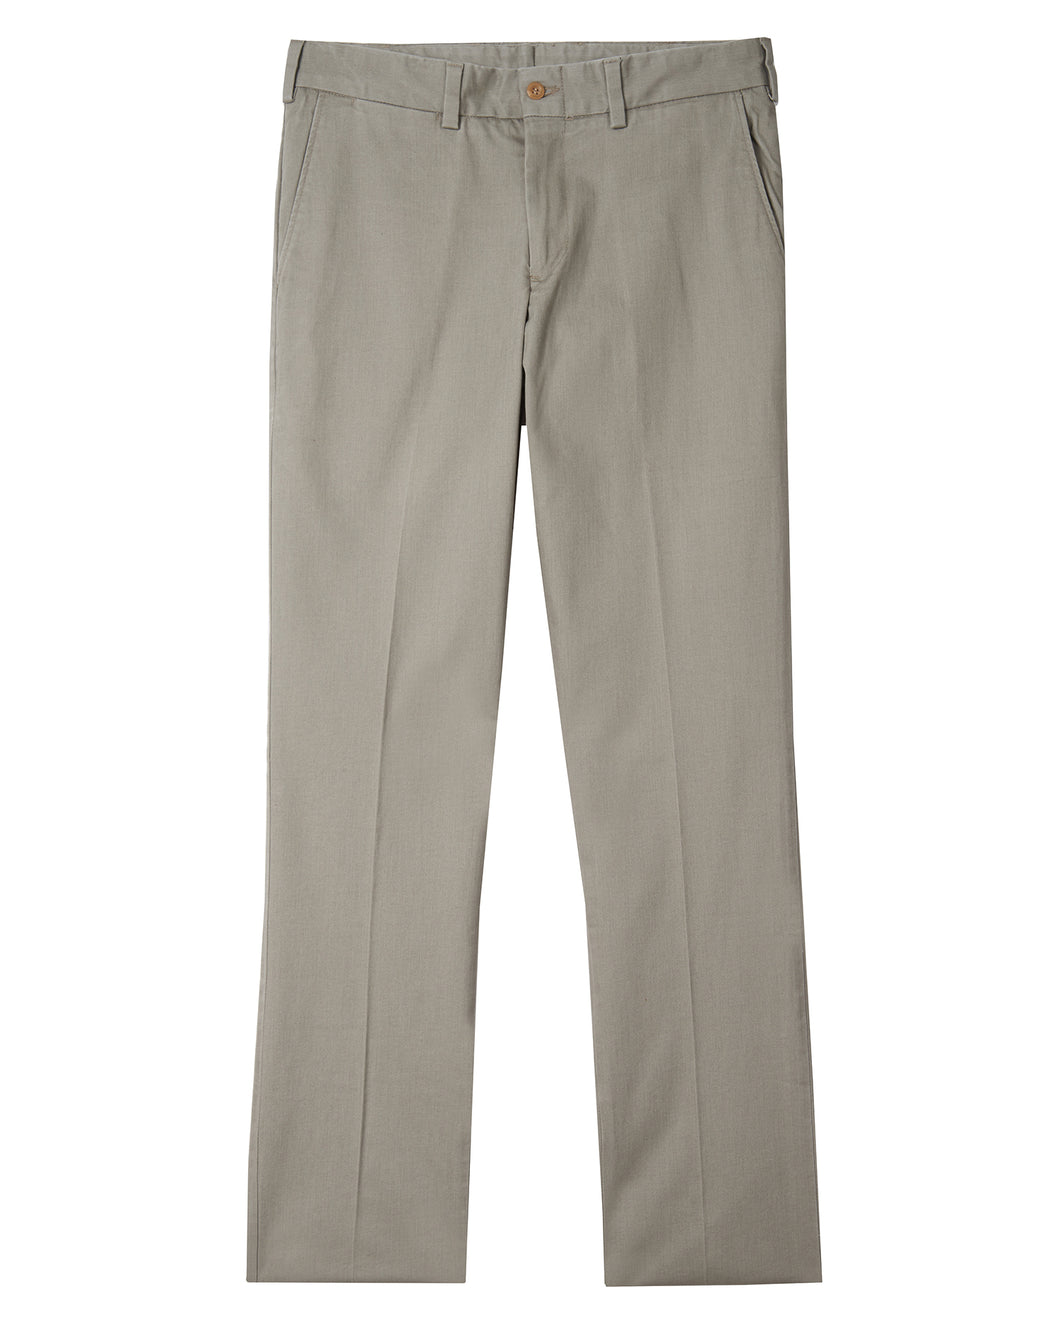 M3 - Straight Fit - T400 Stretch Broken Twill